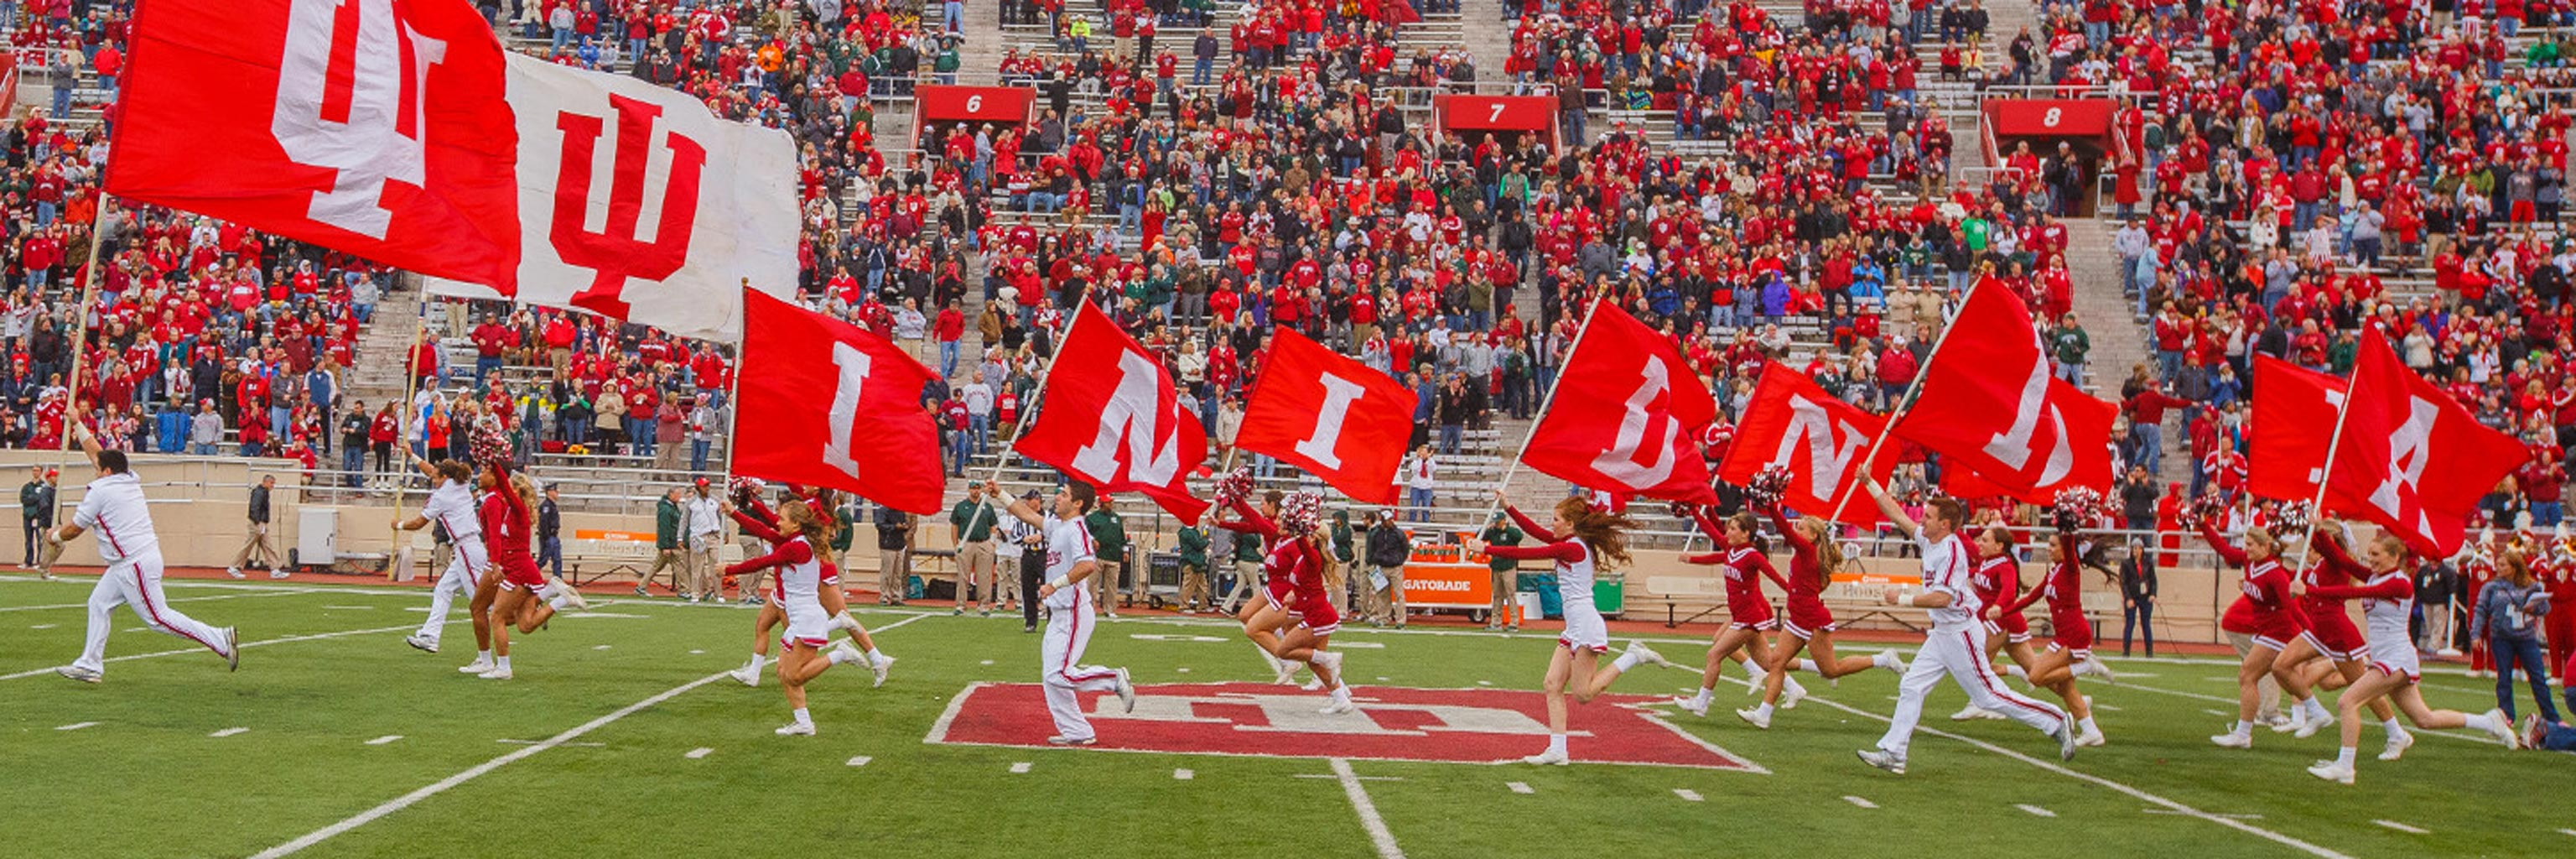 Indiana University pep squad running down football field during a game